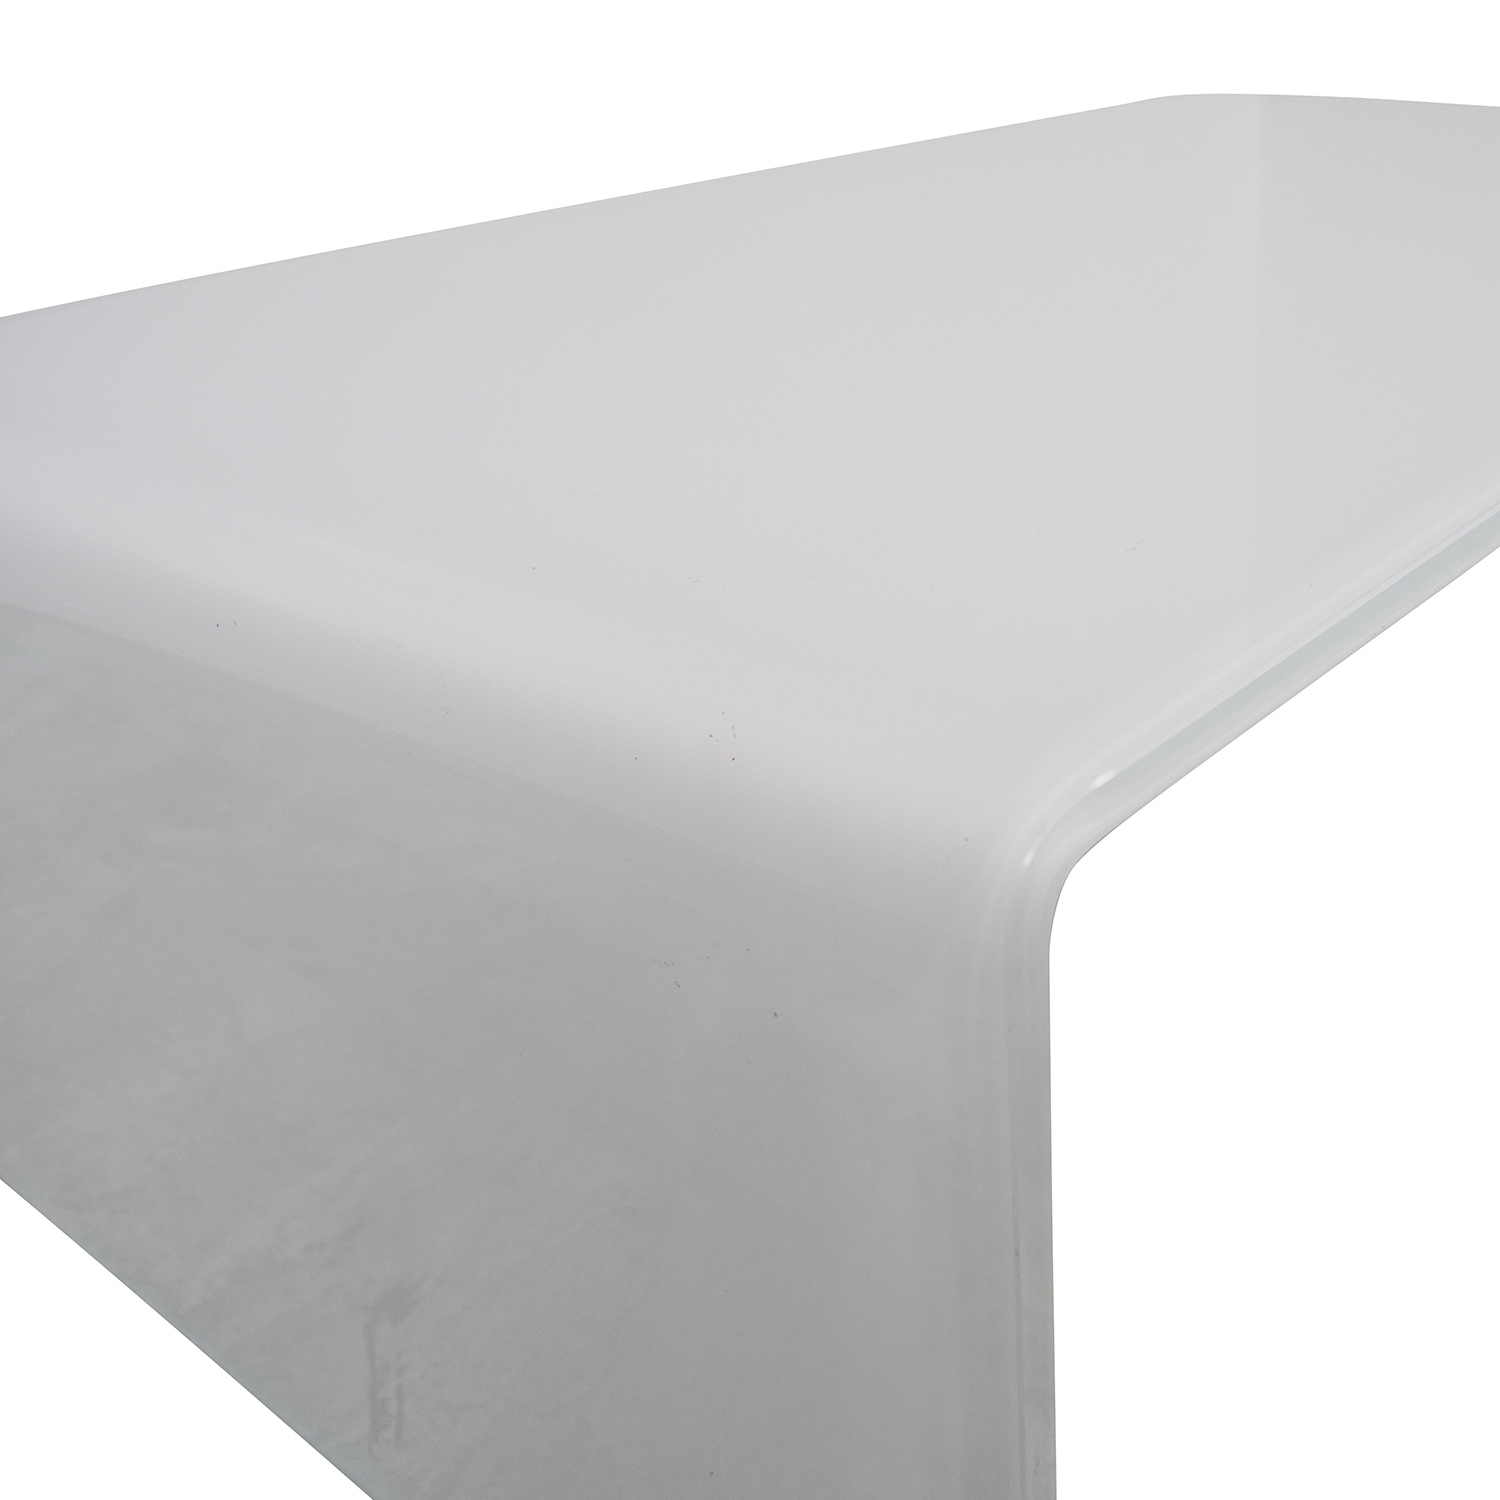 Miniforms Miniforms High-End Curvo White Glass Table nj